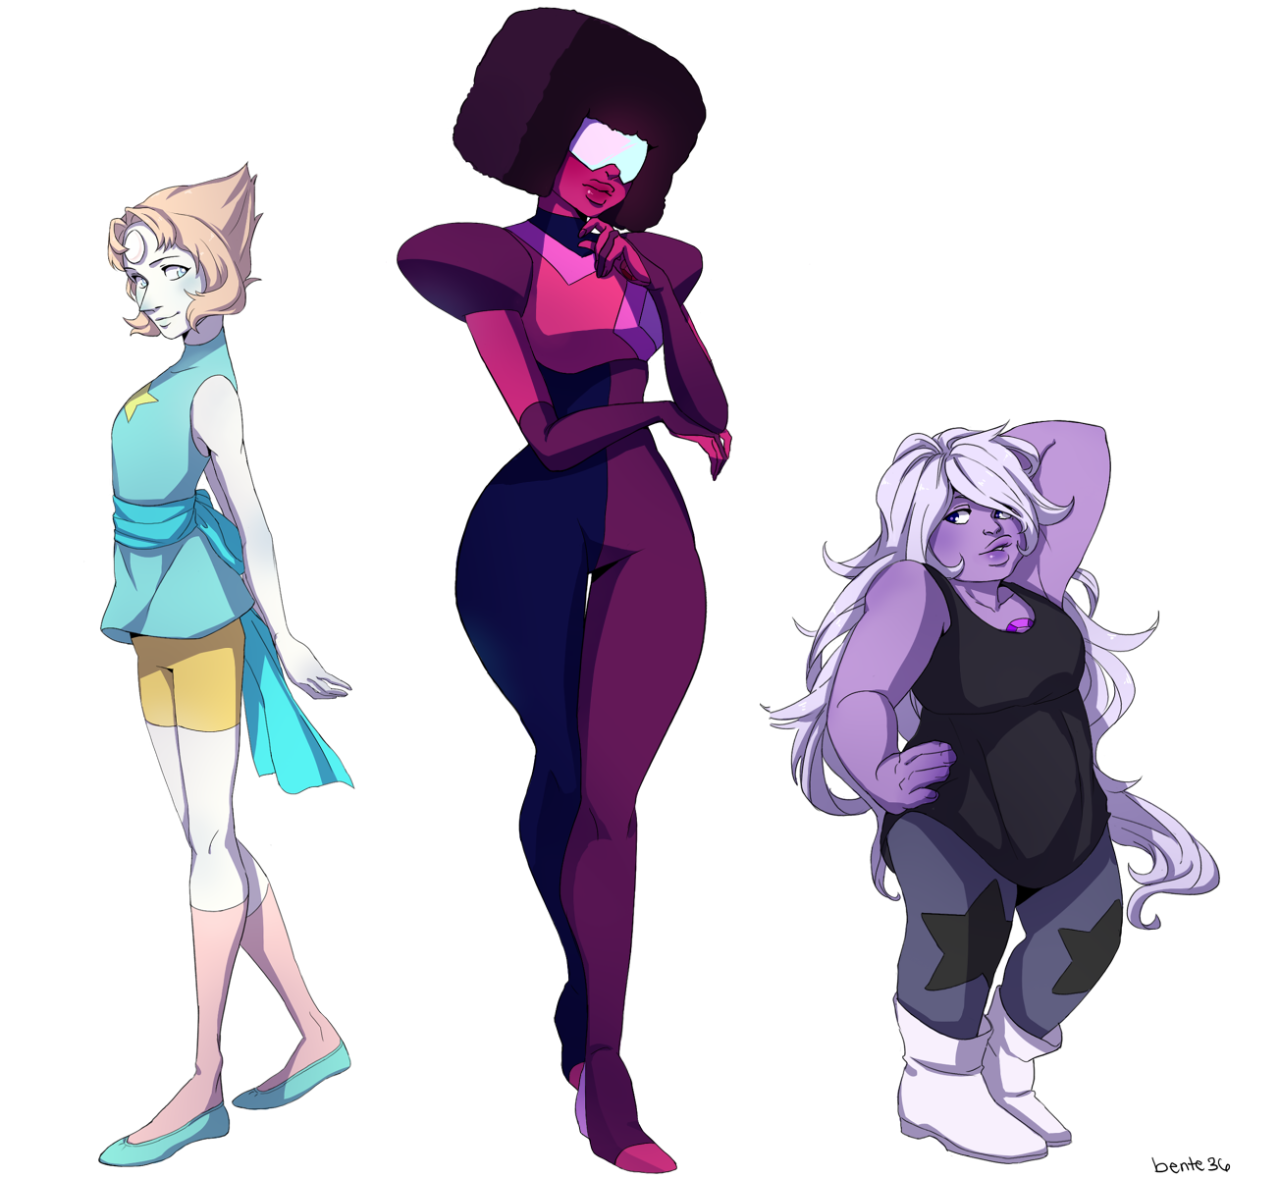 The crystal gems! I love drawing them! Now we just need Jasper.